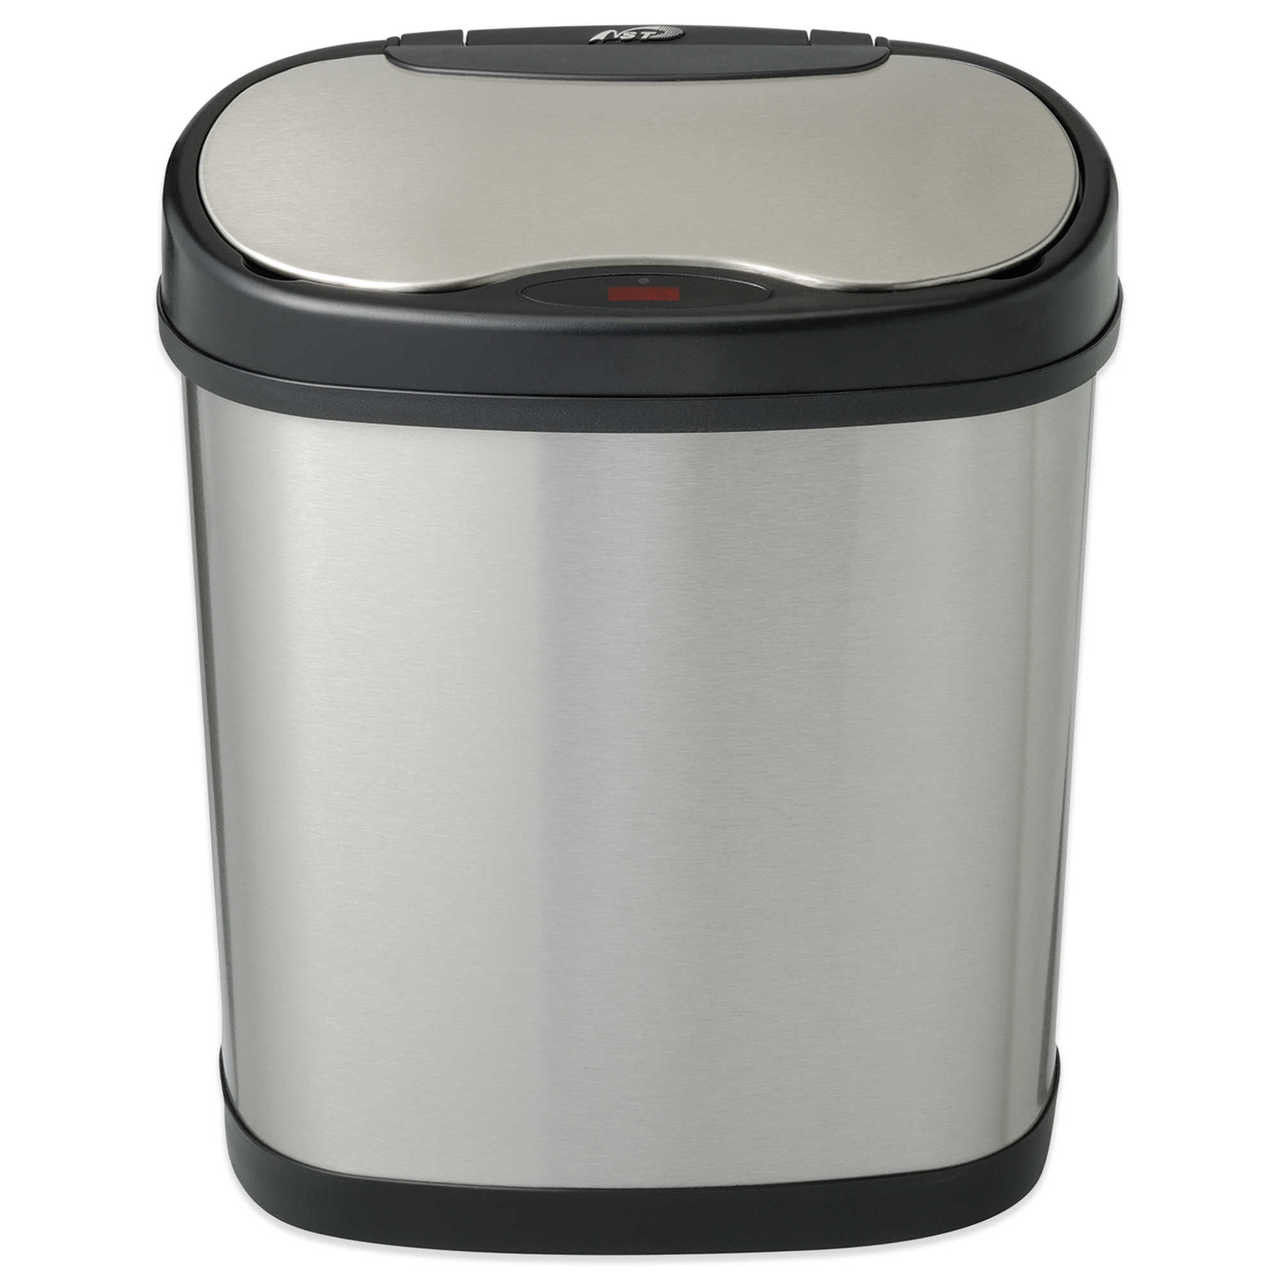 3 Gallon Touchless Automatic Bathroom Trash Can Stainless Steel DZT-12-13 Front